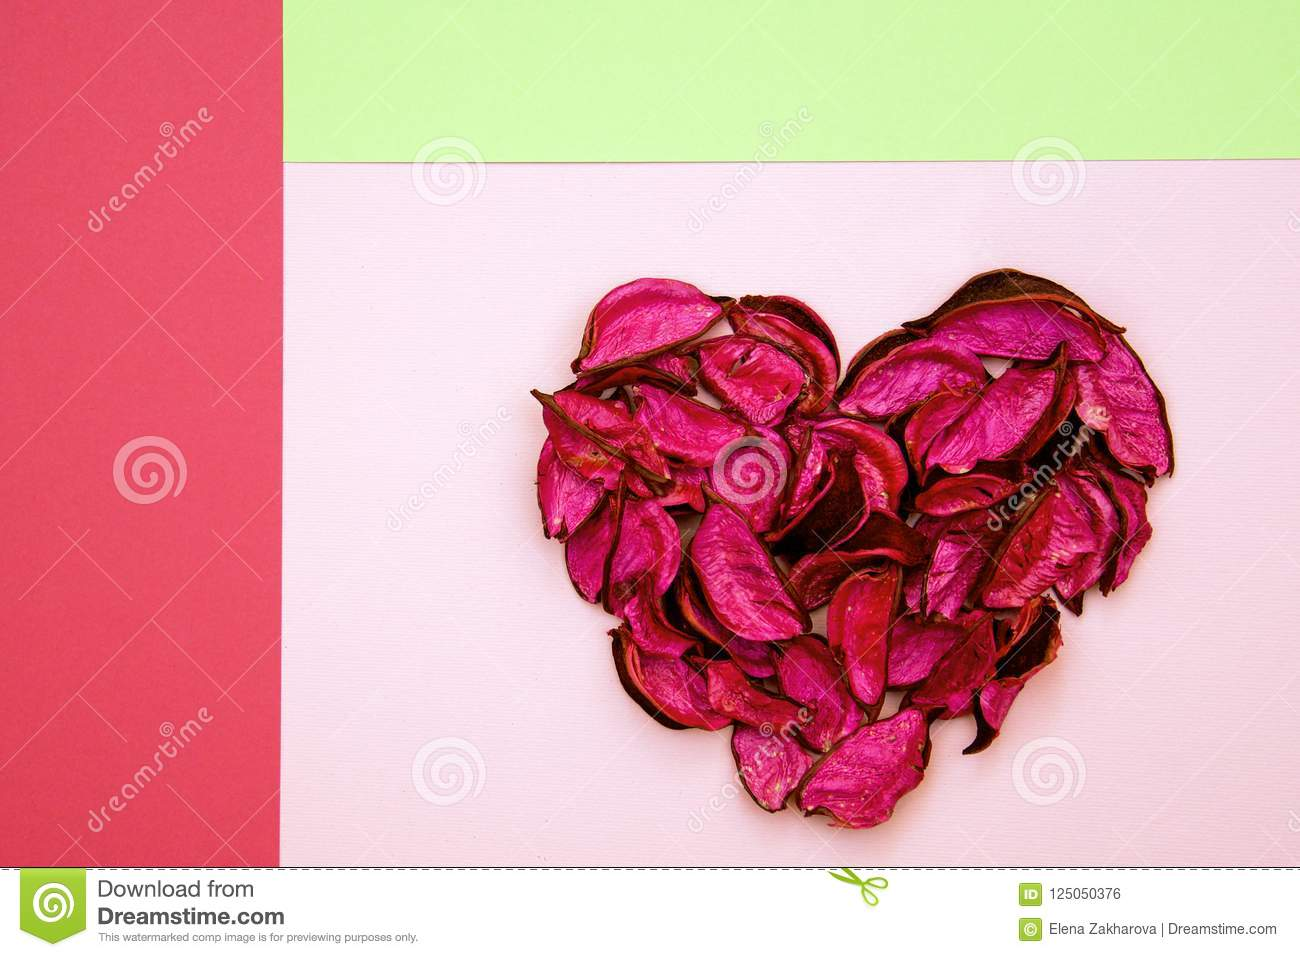 Abstract heart made of dried petals on colorful geometric background